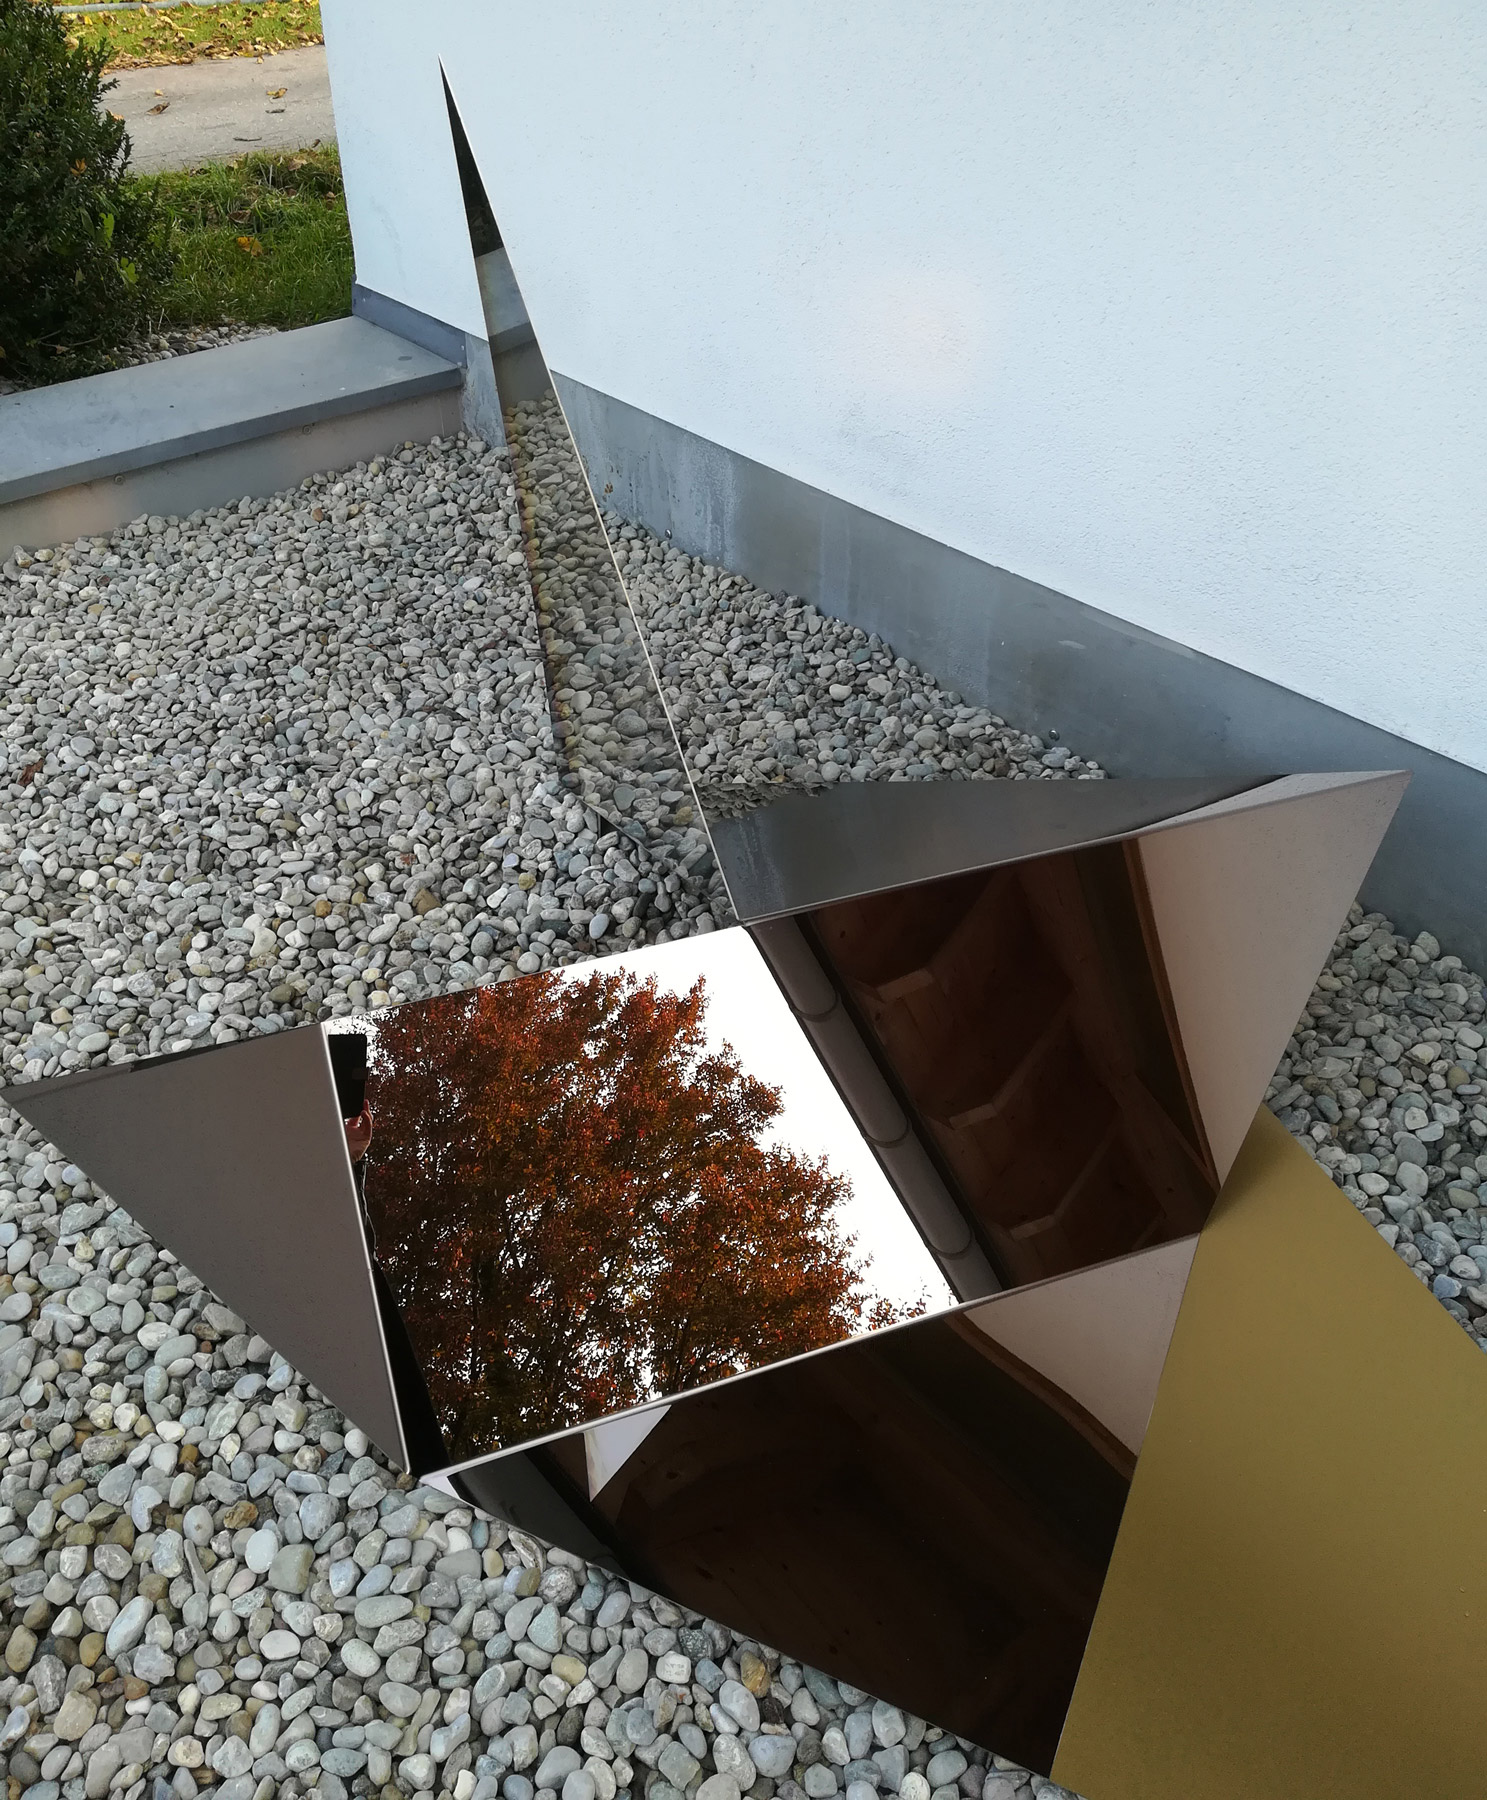 Nina Annabelle Märkl | Reflections | polished steel | 620 x 170 x 120 cm | 2018